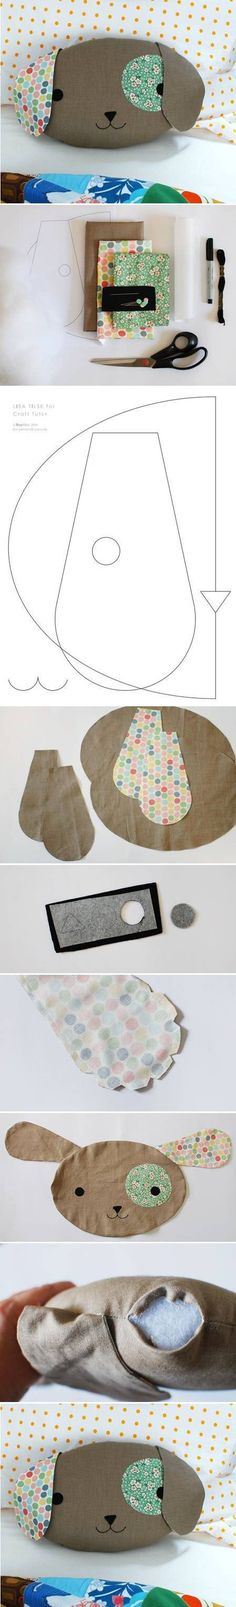 How To Make Pillows That Look Like Puppies diy sewing kids crafts how to tutorial sewing crafts Sewing Toys, Baby Sewing, Sewing Crafts, Sewing Hacks, Sewing Tutorials, Sewing Patterns, Cute Pillows, Diy Pillows, Sewing Pillows